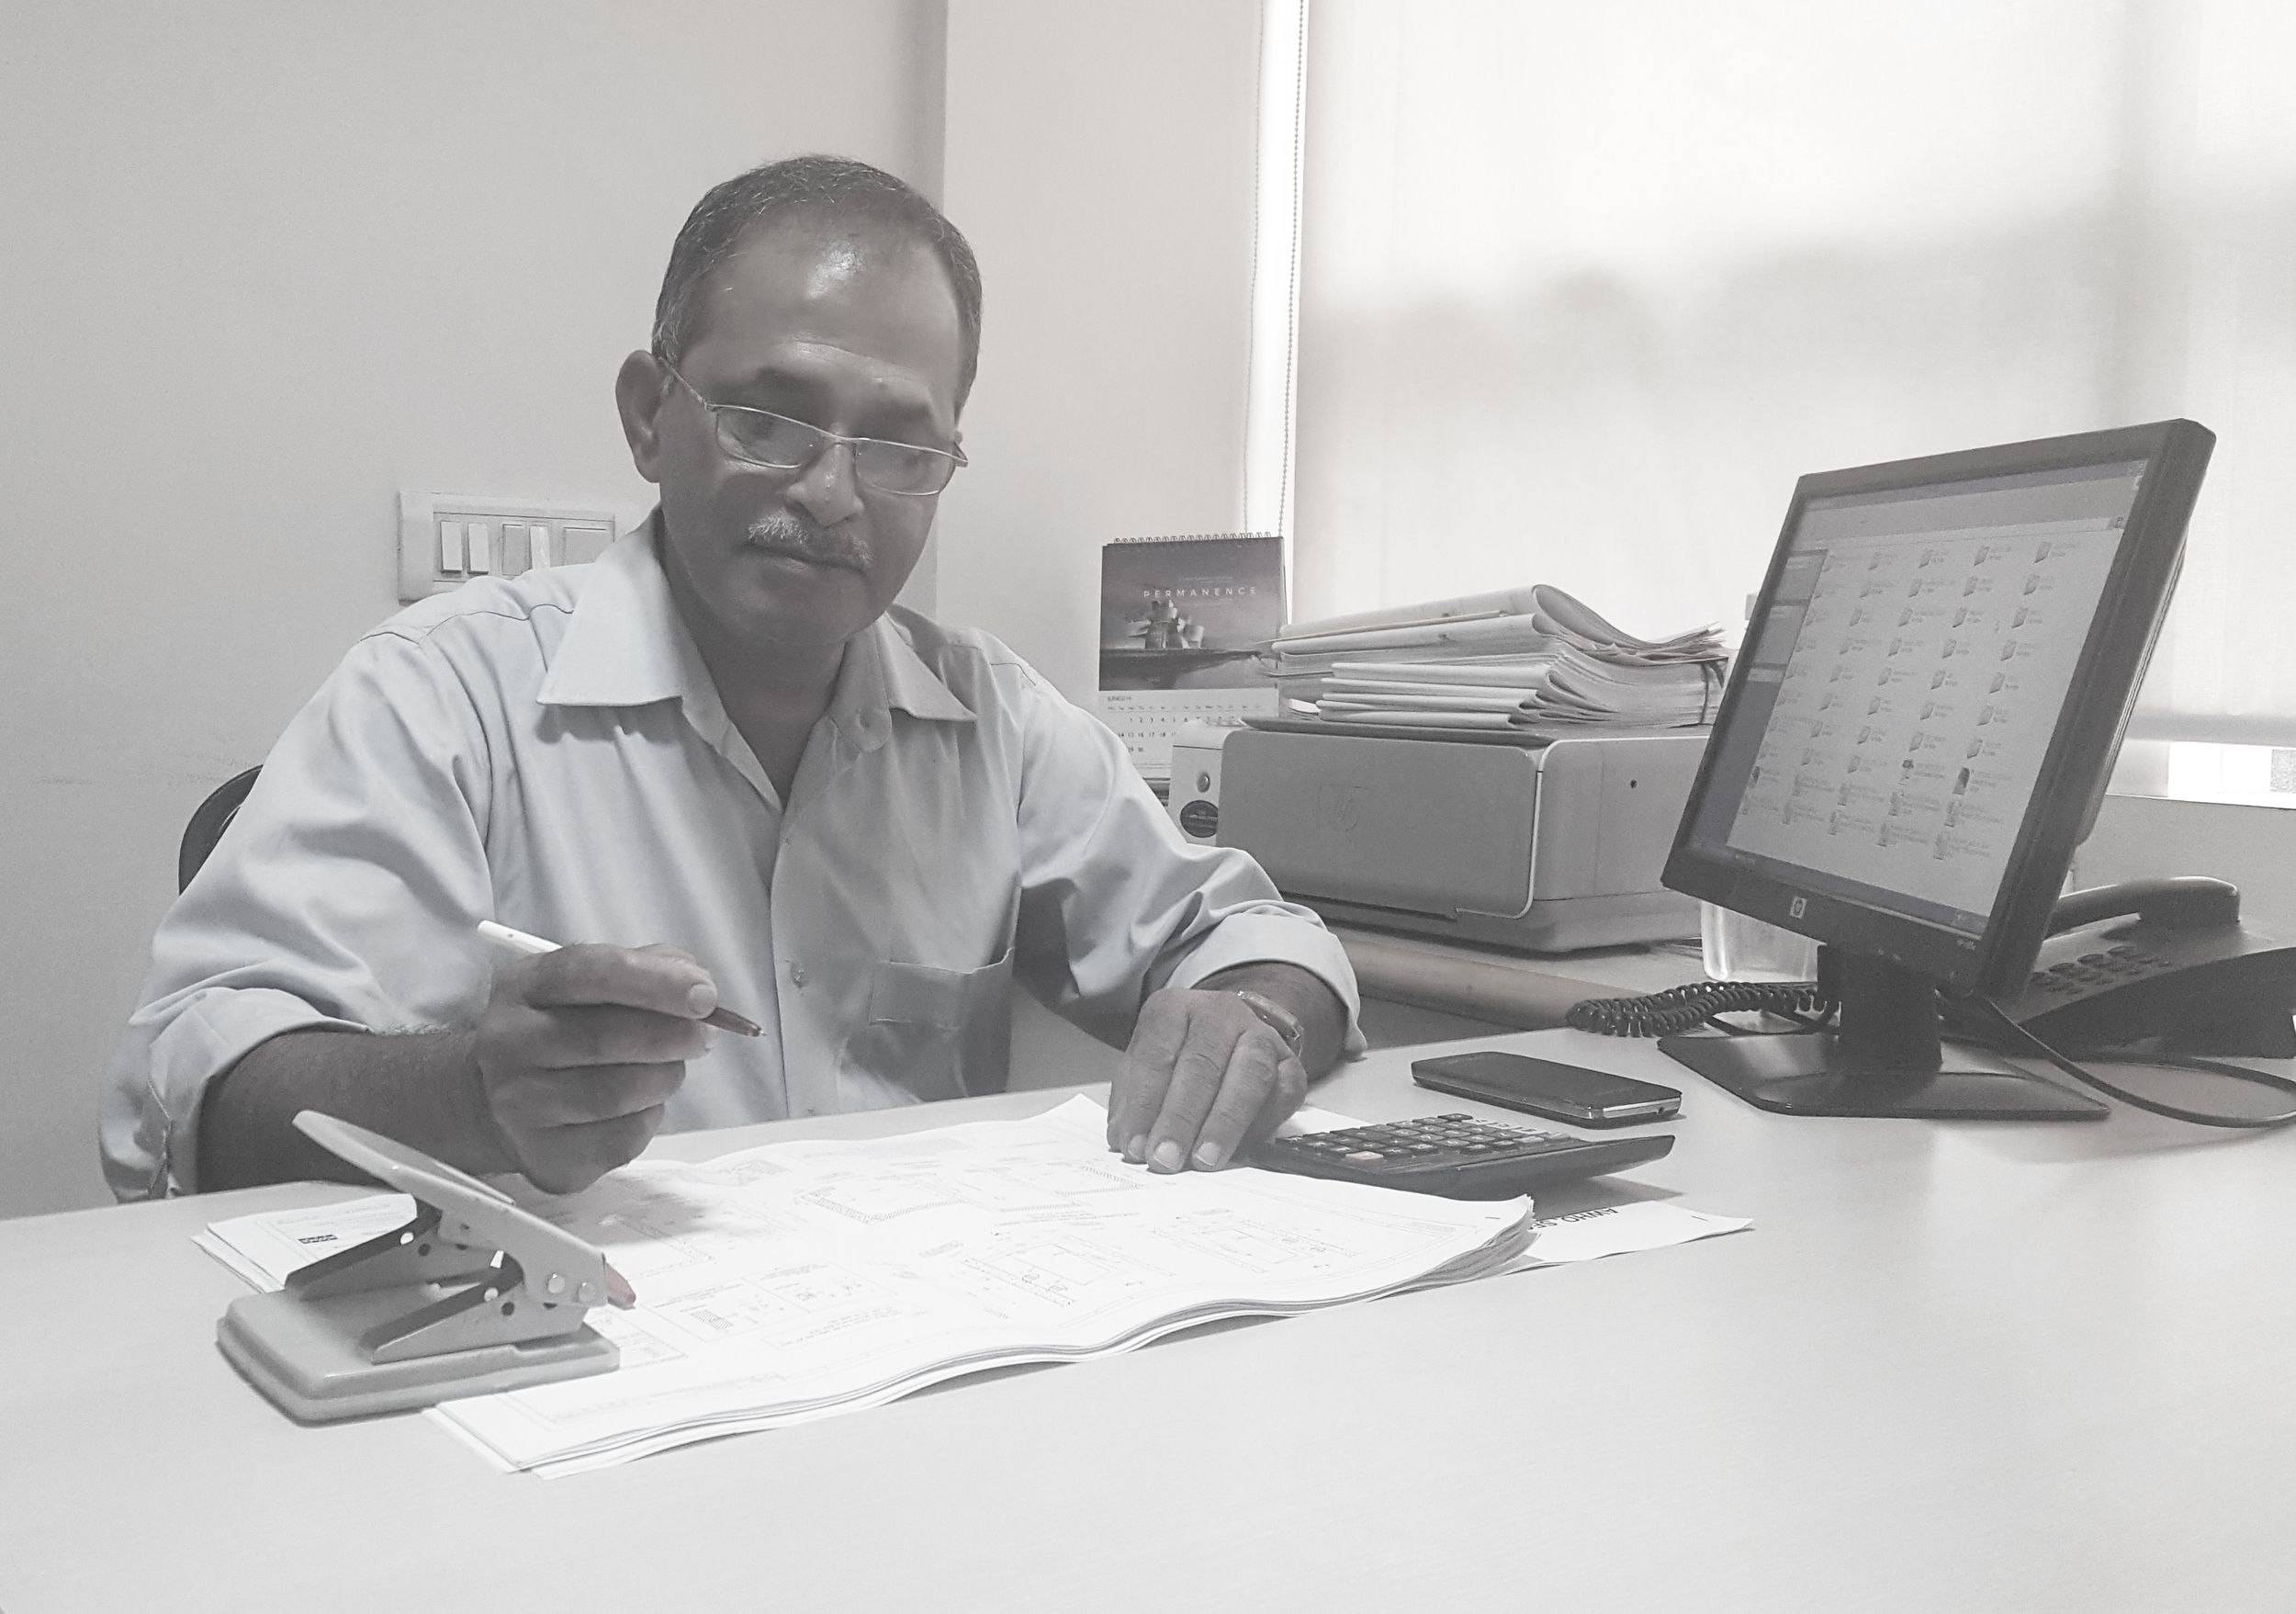 Shirish B. Padhye   Associate  Shirish B. Padhye has 37 years of experience in the field of Architecture. He managed a proprietary Architectural consultancy firm at Nagpur (Maharashtra) from 1984 to 2008 during which he dealt with Housing, Banks & Administrative building projects. He also offered techno-legal consultancy to All India Consumer Redressal Forum.  Mr. Padhye has been associated with NUPC since 2008. Here he is responsible for project coordination encompassing every phase of building construction viz. preparation of tender & contract documents, site coordination, statutory co-ordination, engineering coordination for group housing projects.  He deals with day to day queries from clients, NUPC staff at site & contractor's staff. He also visits sites periodically to oversee their management and for verification of work done and is currently handling DGMAP, AWHO and police housing projects.